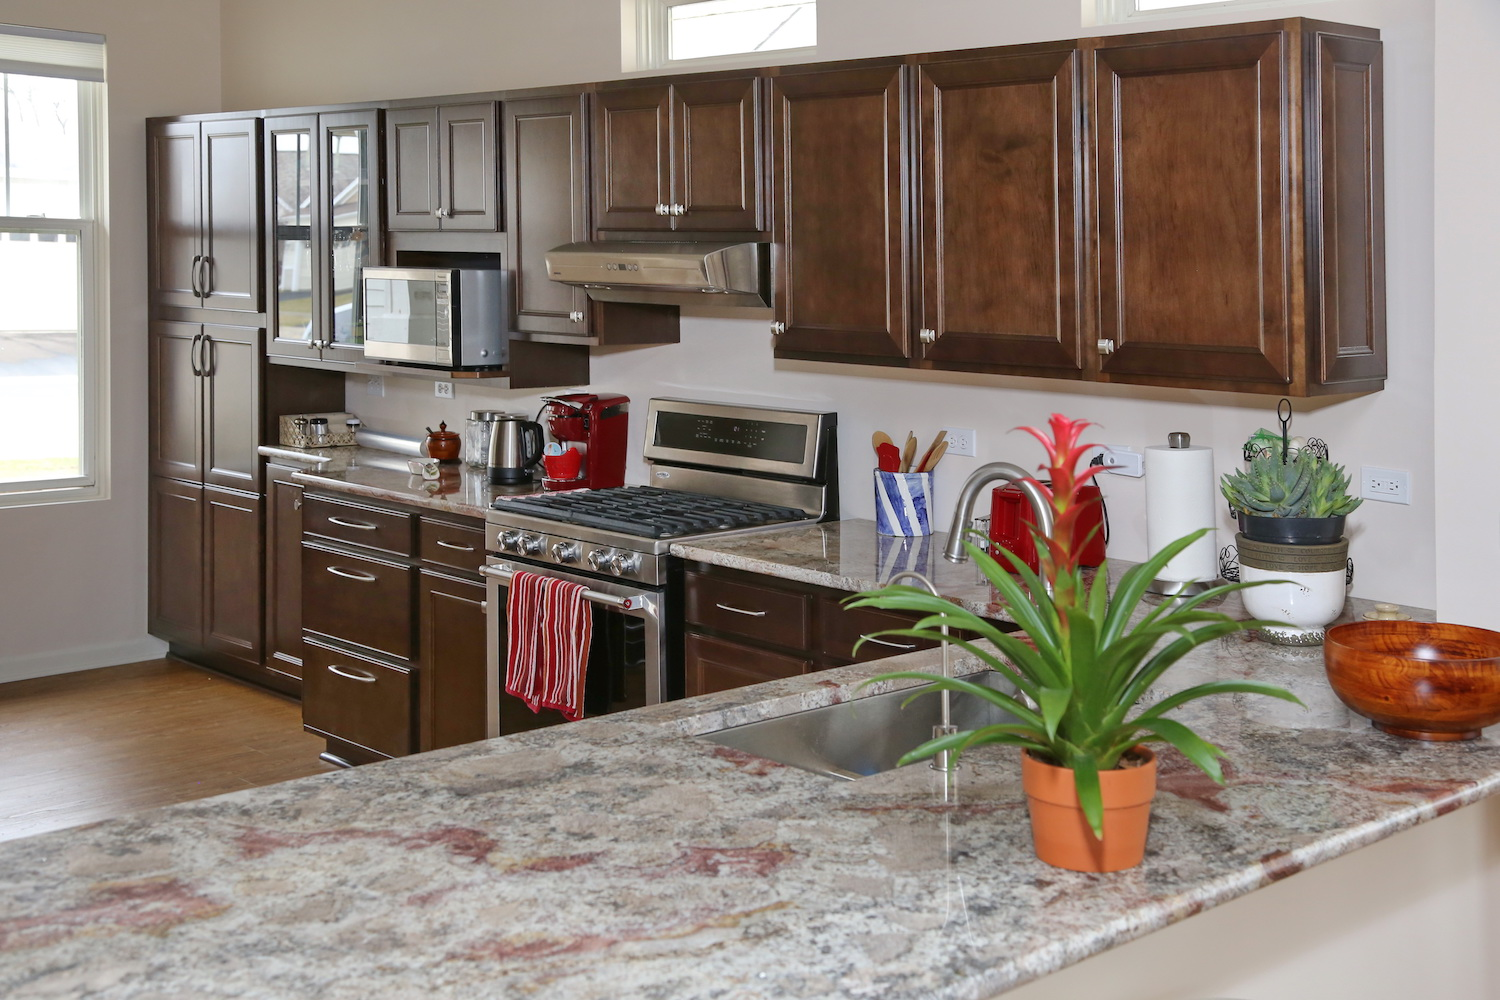 Do You Need A Kitchen Designer: Ask The Expert: How Much Room Do Appliances Need In My